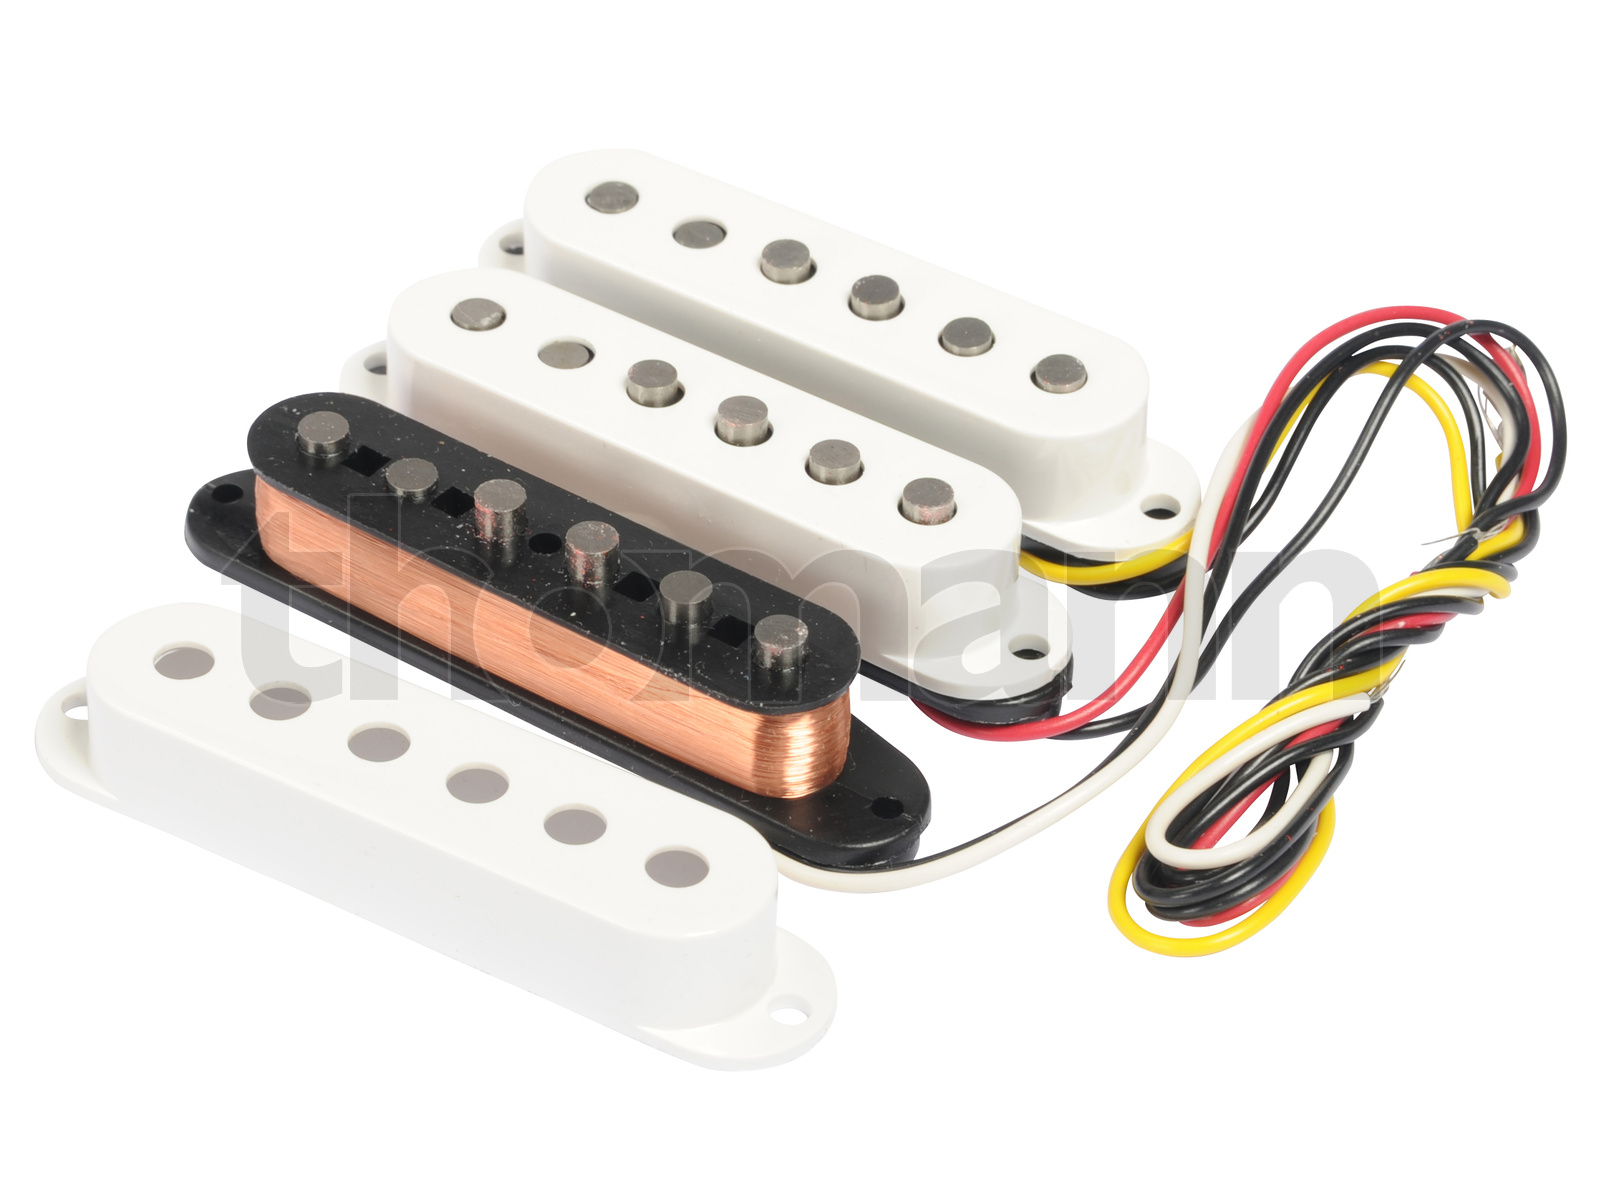 fender tex mex strat pickups 612246 fender tex mex strat pickups image ( 612246) audiofanzine fender tex mex pickup wiring diagram at mifinder.co